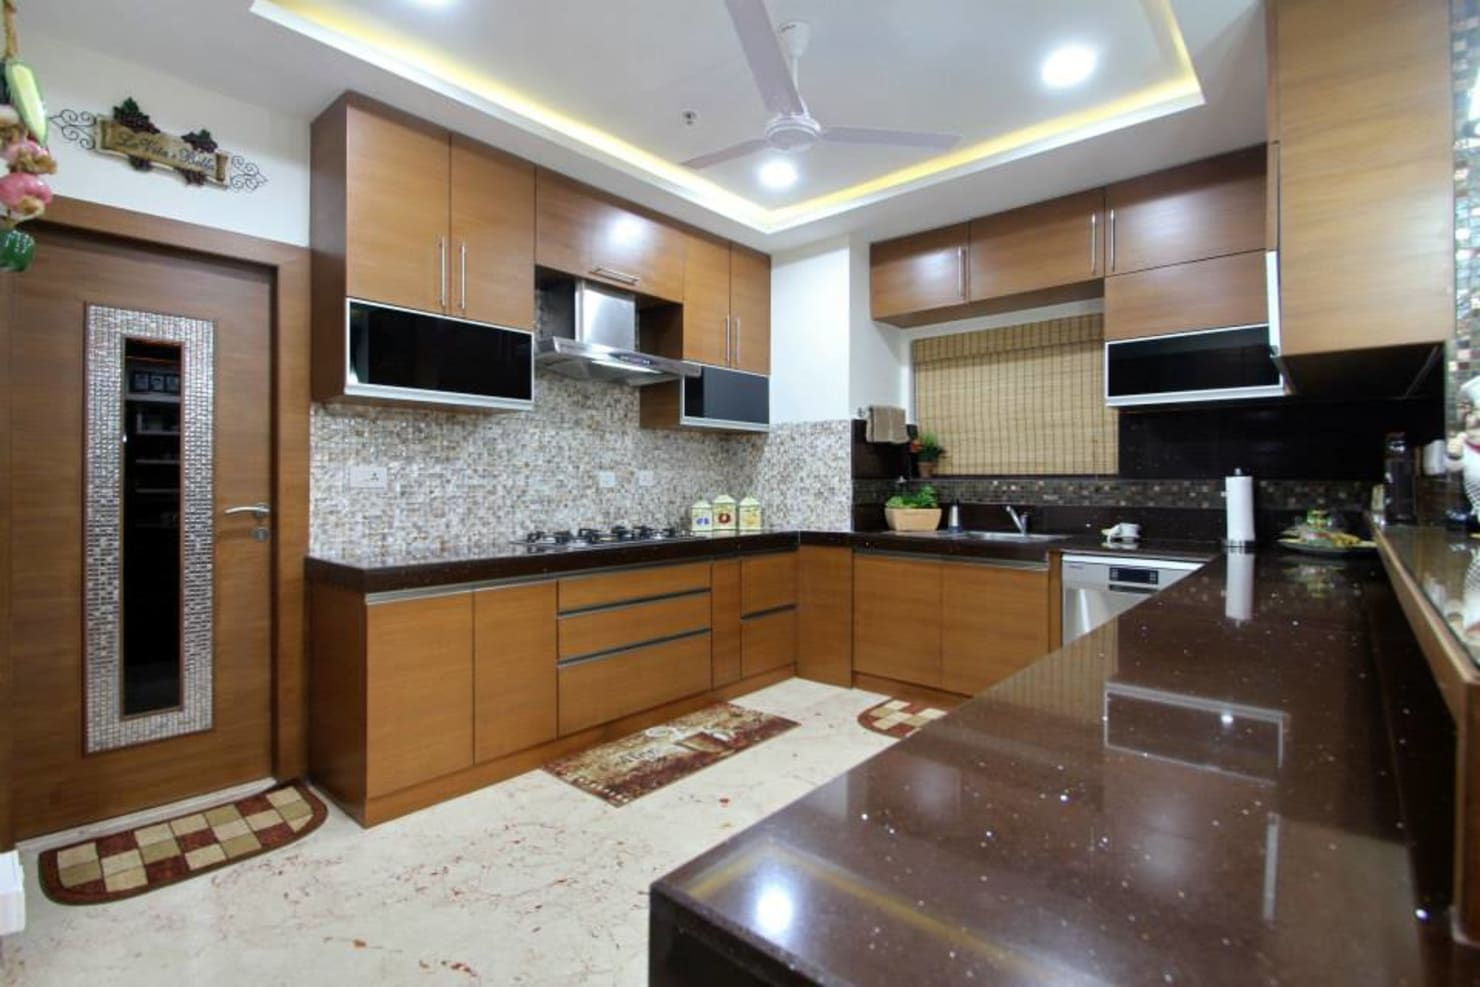 How do I build a modern kitchen for an Indian home?